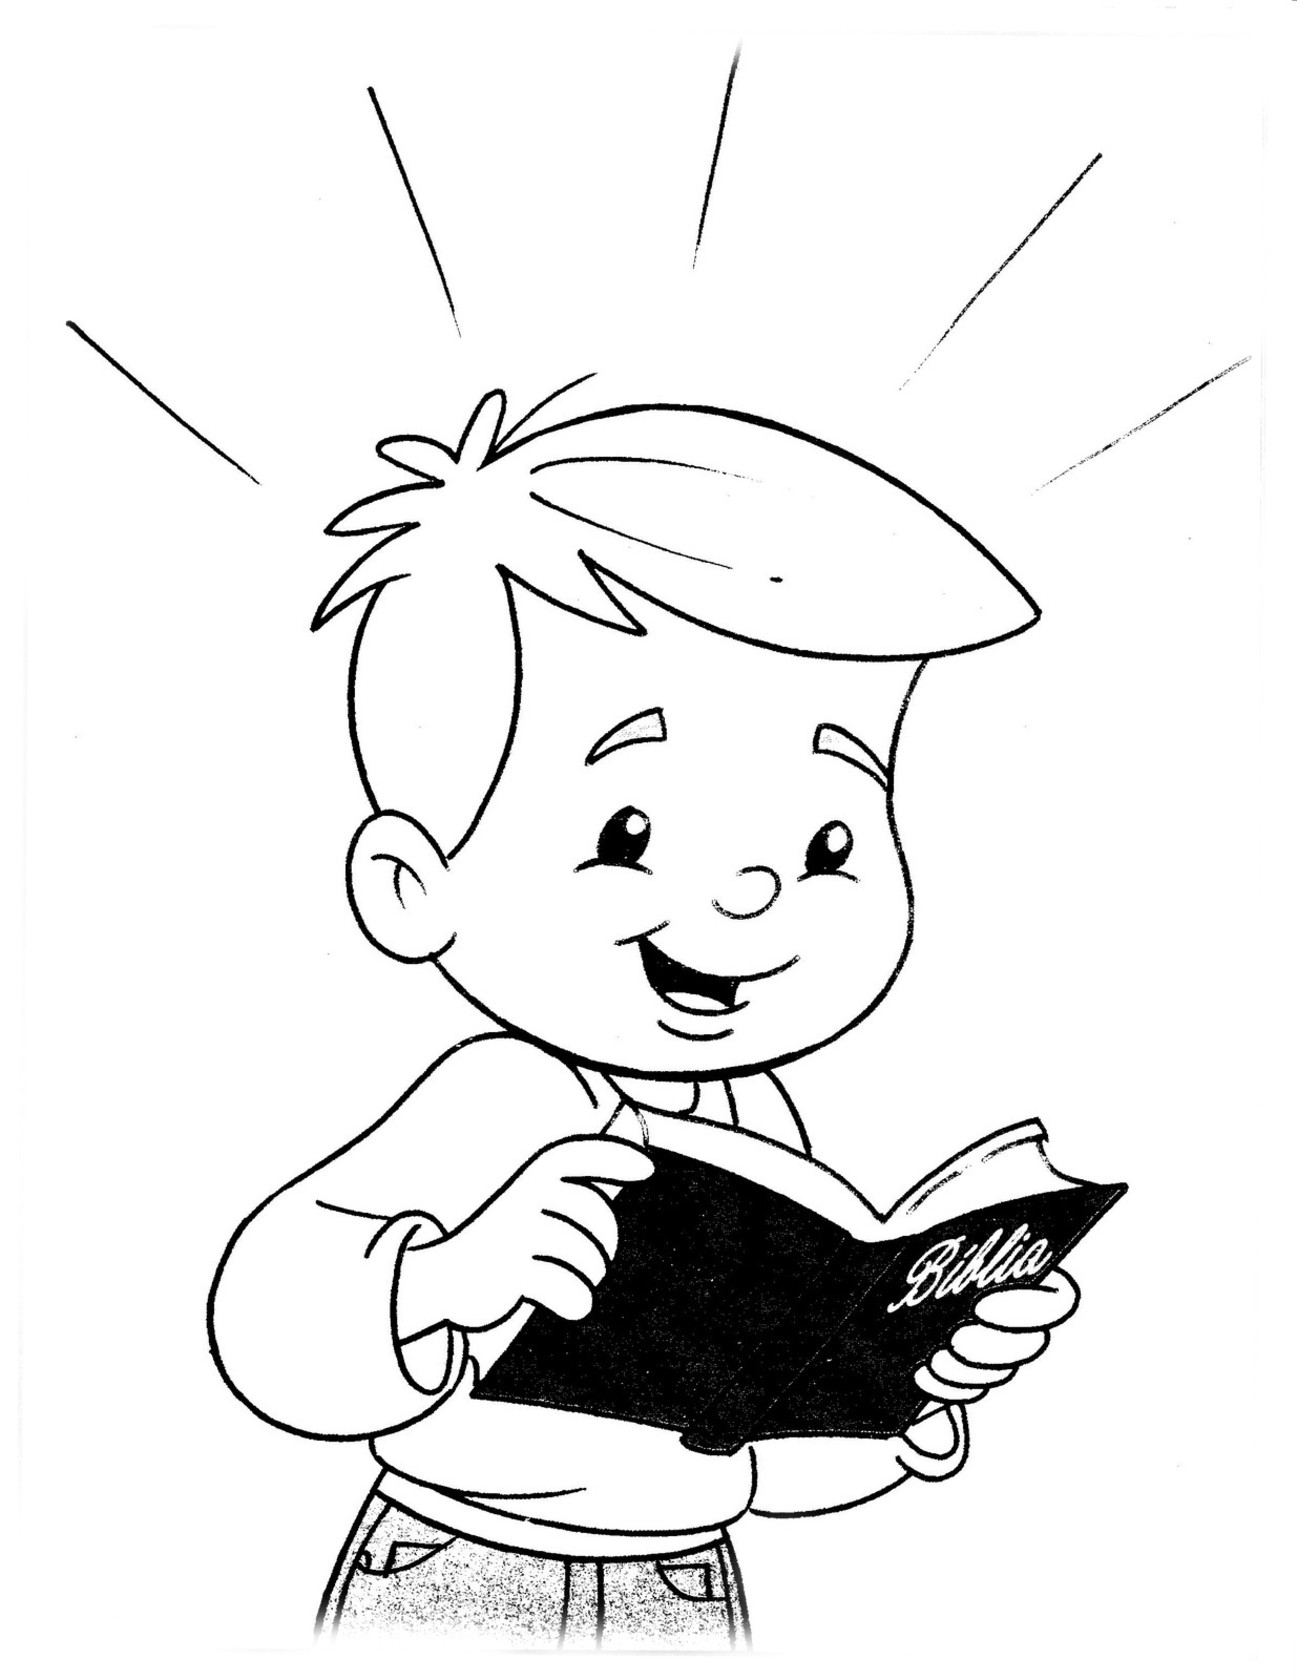 1297x1680 Childrens Bible Coloring Pages